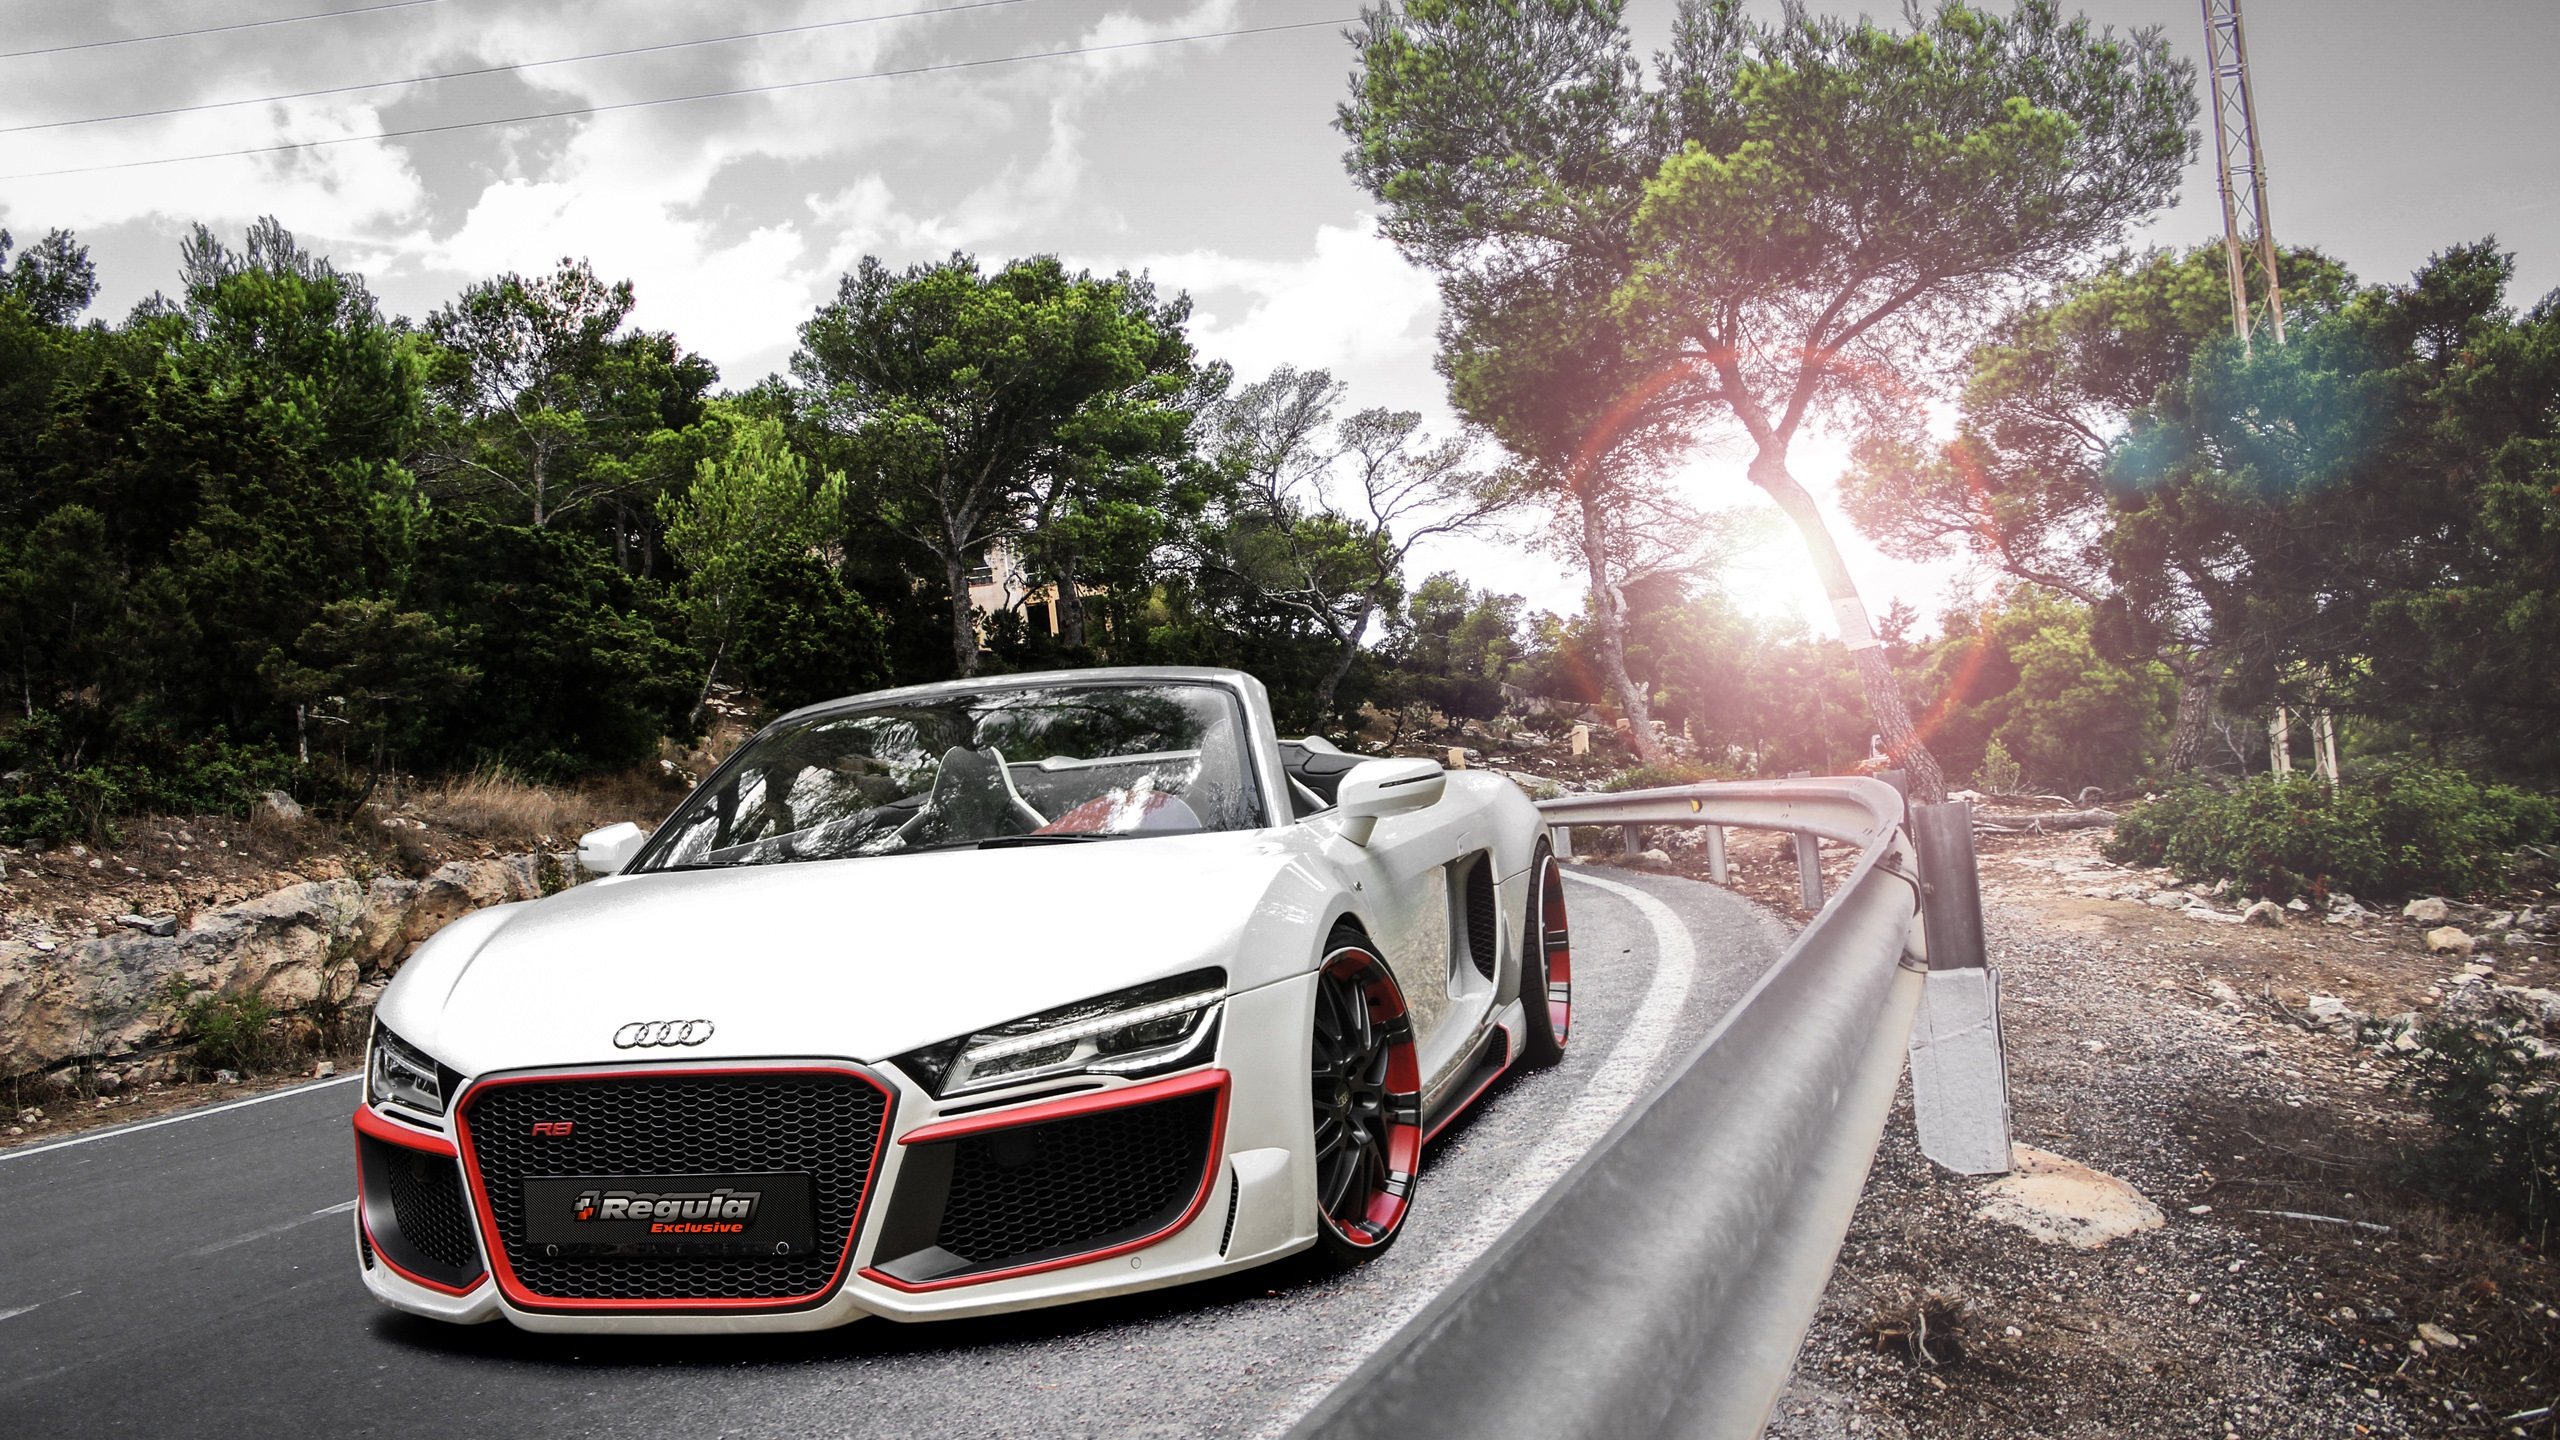 Cars Audi Roads R8 White V10 Wallpaper Allwallpaper In: Fonds D'écran Audi R8 Voiture Blanc, Coucher De Soleil